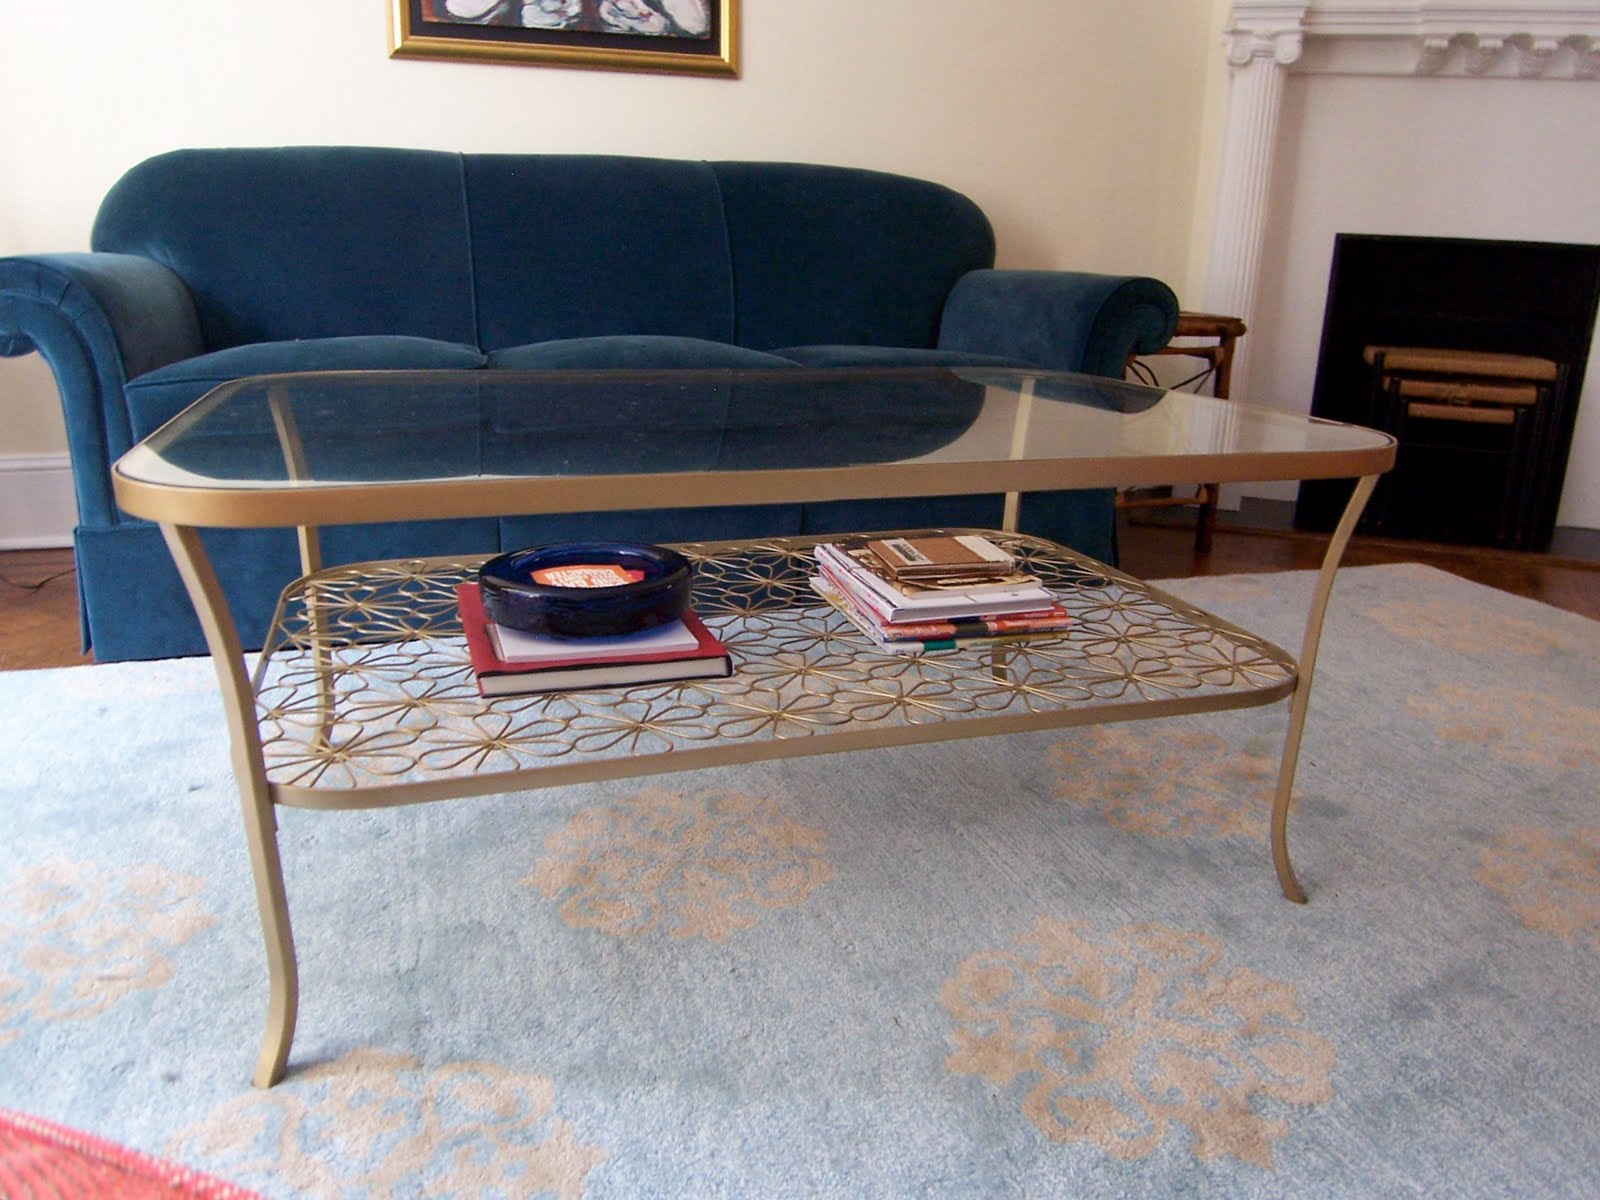 Bossy color s living room part 12 the coffee table for Does a living room need a coffee table